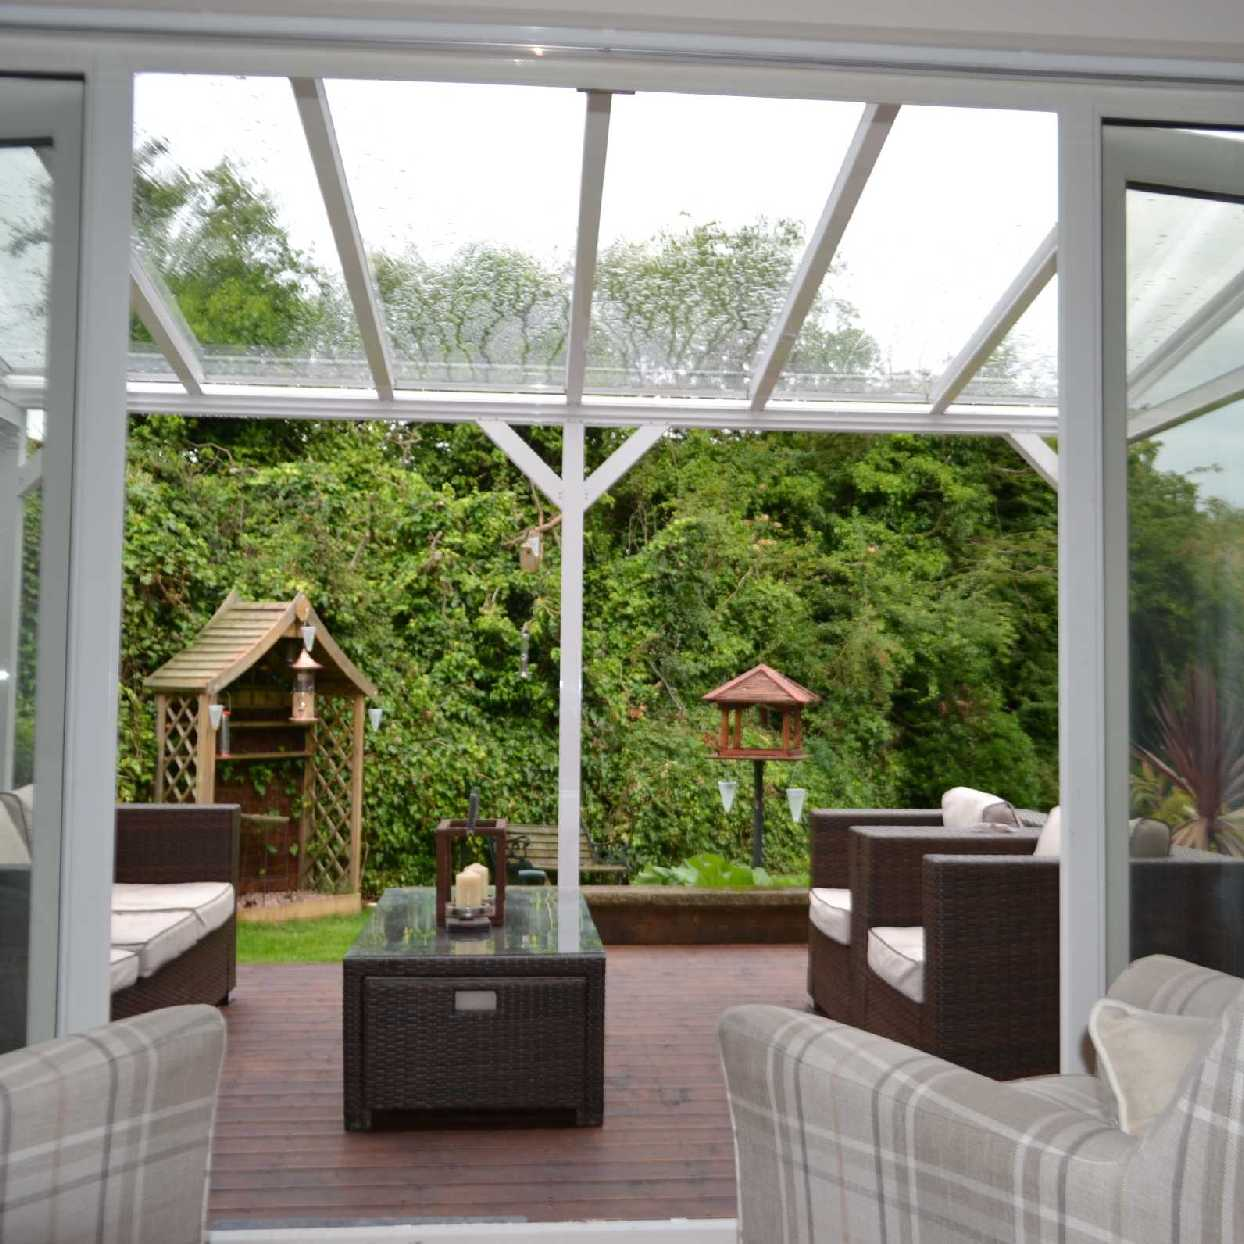 Great selection of Omega Smart Lean-To Canopy UNGLAZED for 6mm Glazing - 7.0m (W) x 3.0m (P), (4) Supporting Posts